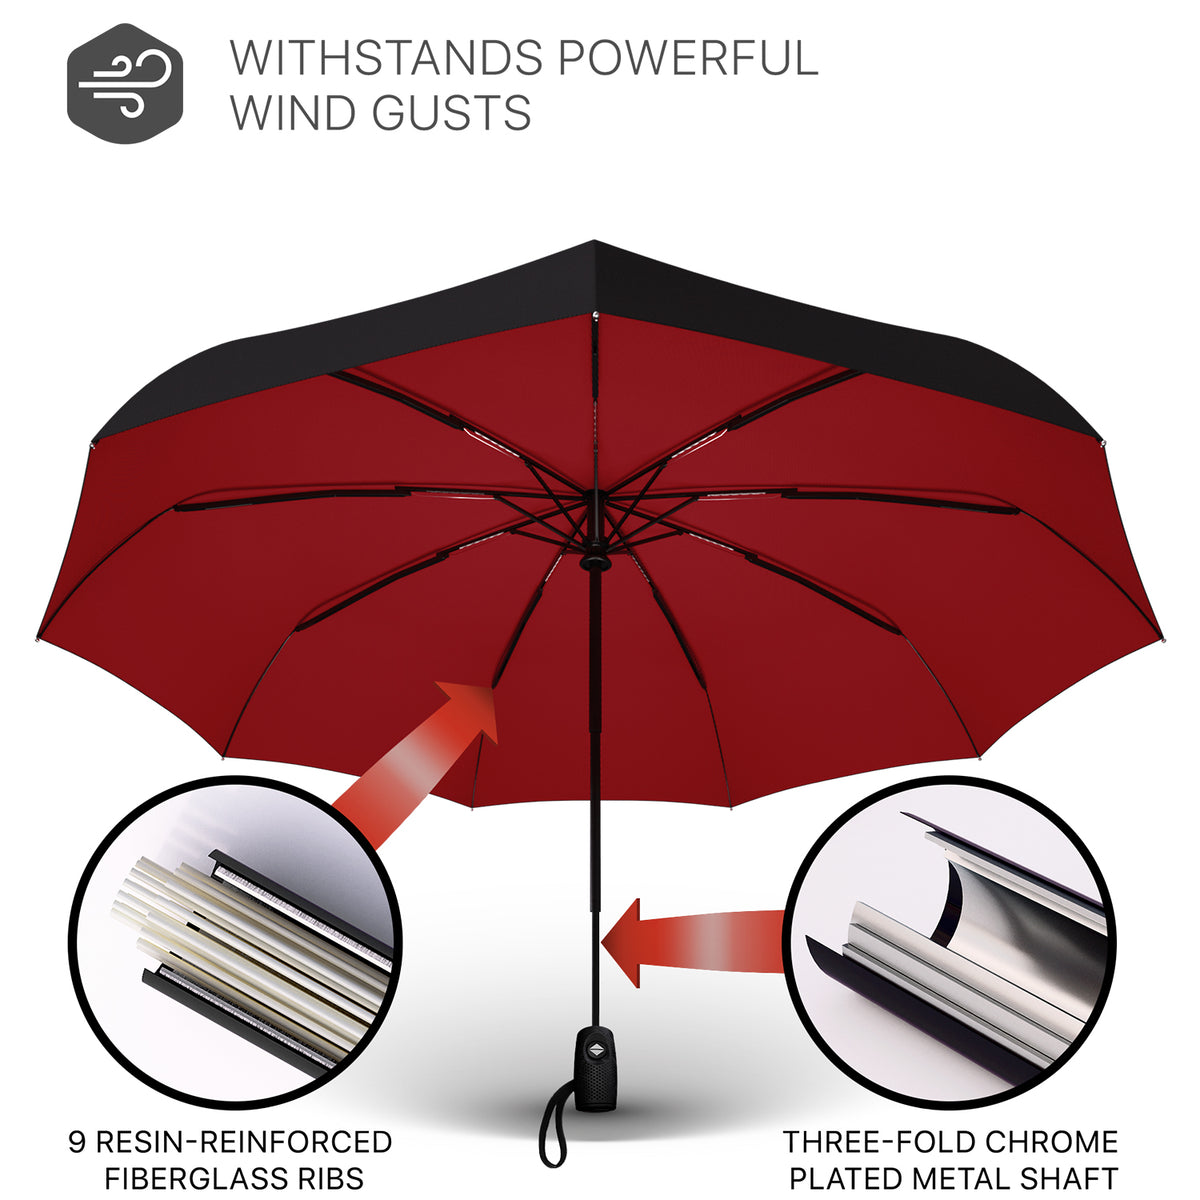 Windproof Travel Umbrella - Compact, Automatic, Red & Black